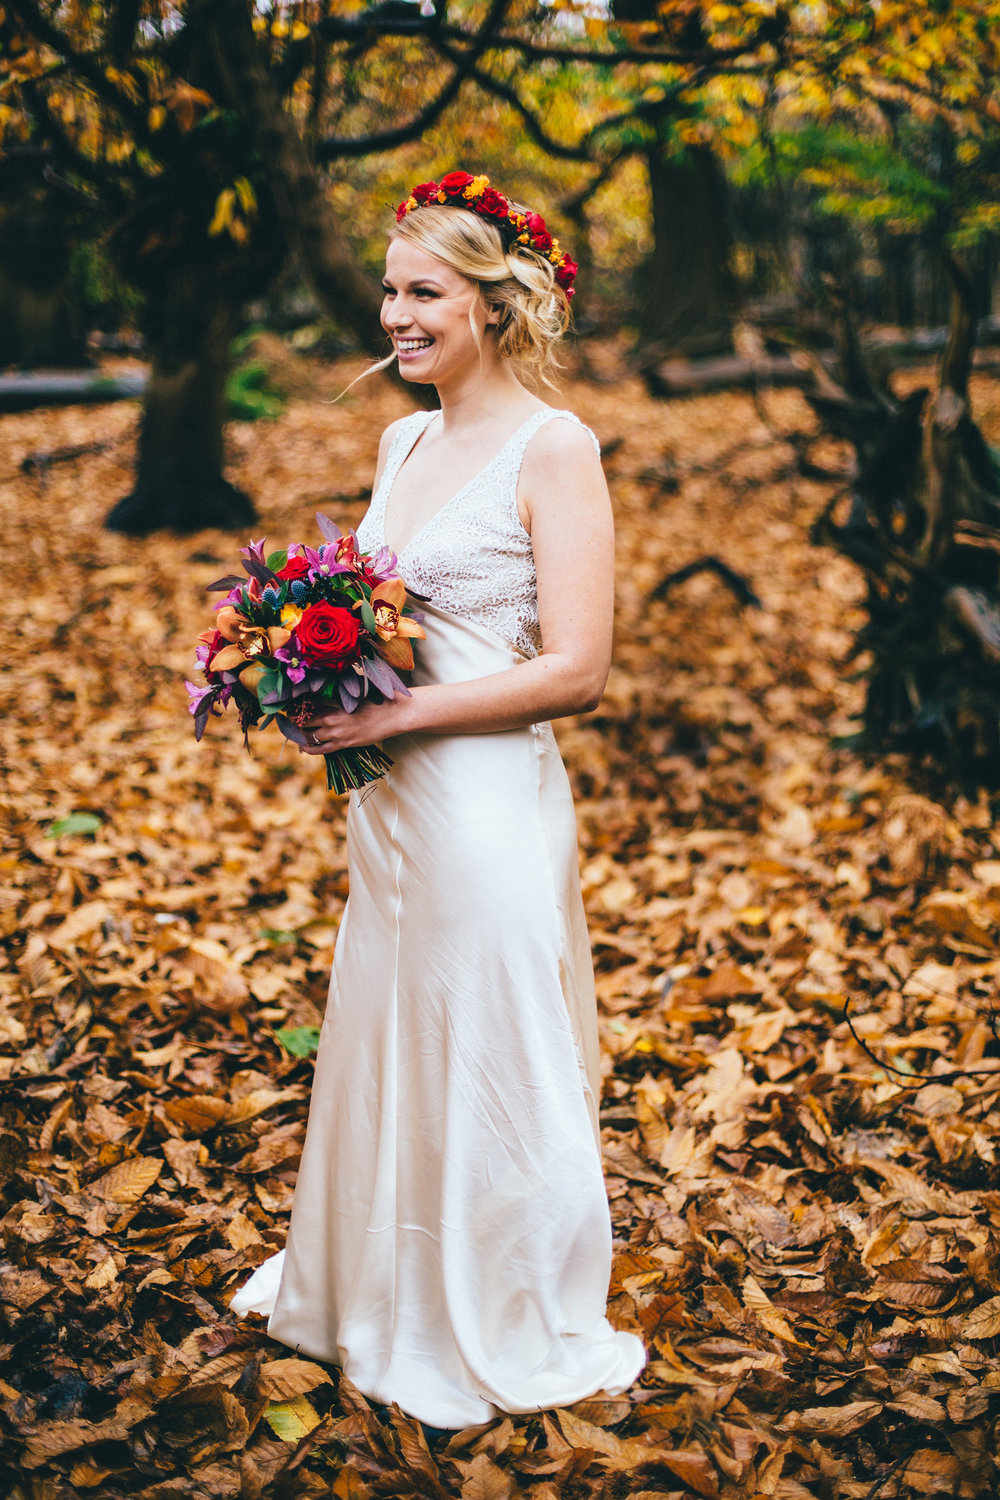 Kate-Beaumont-Wedding-Dresses-Autumn-Shoot-Rebecca-Tovey-5.jpg